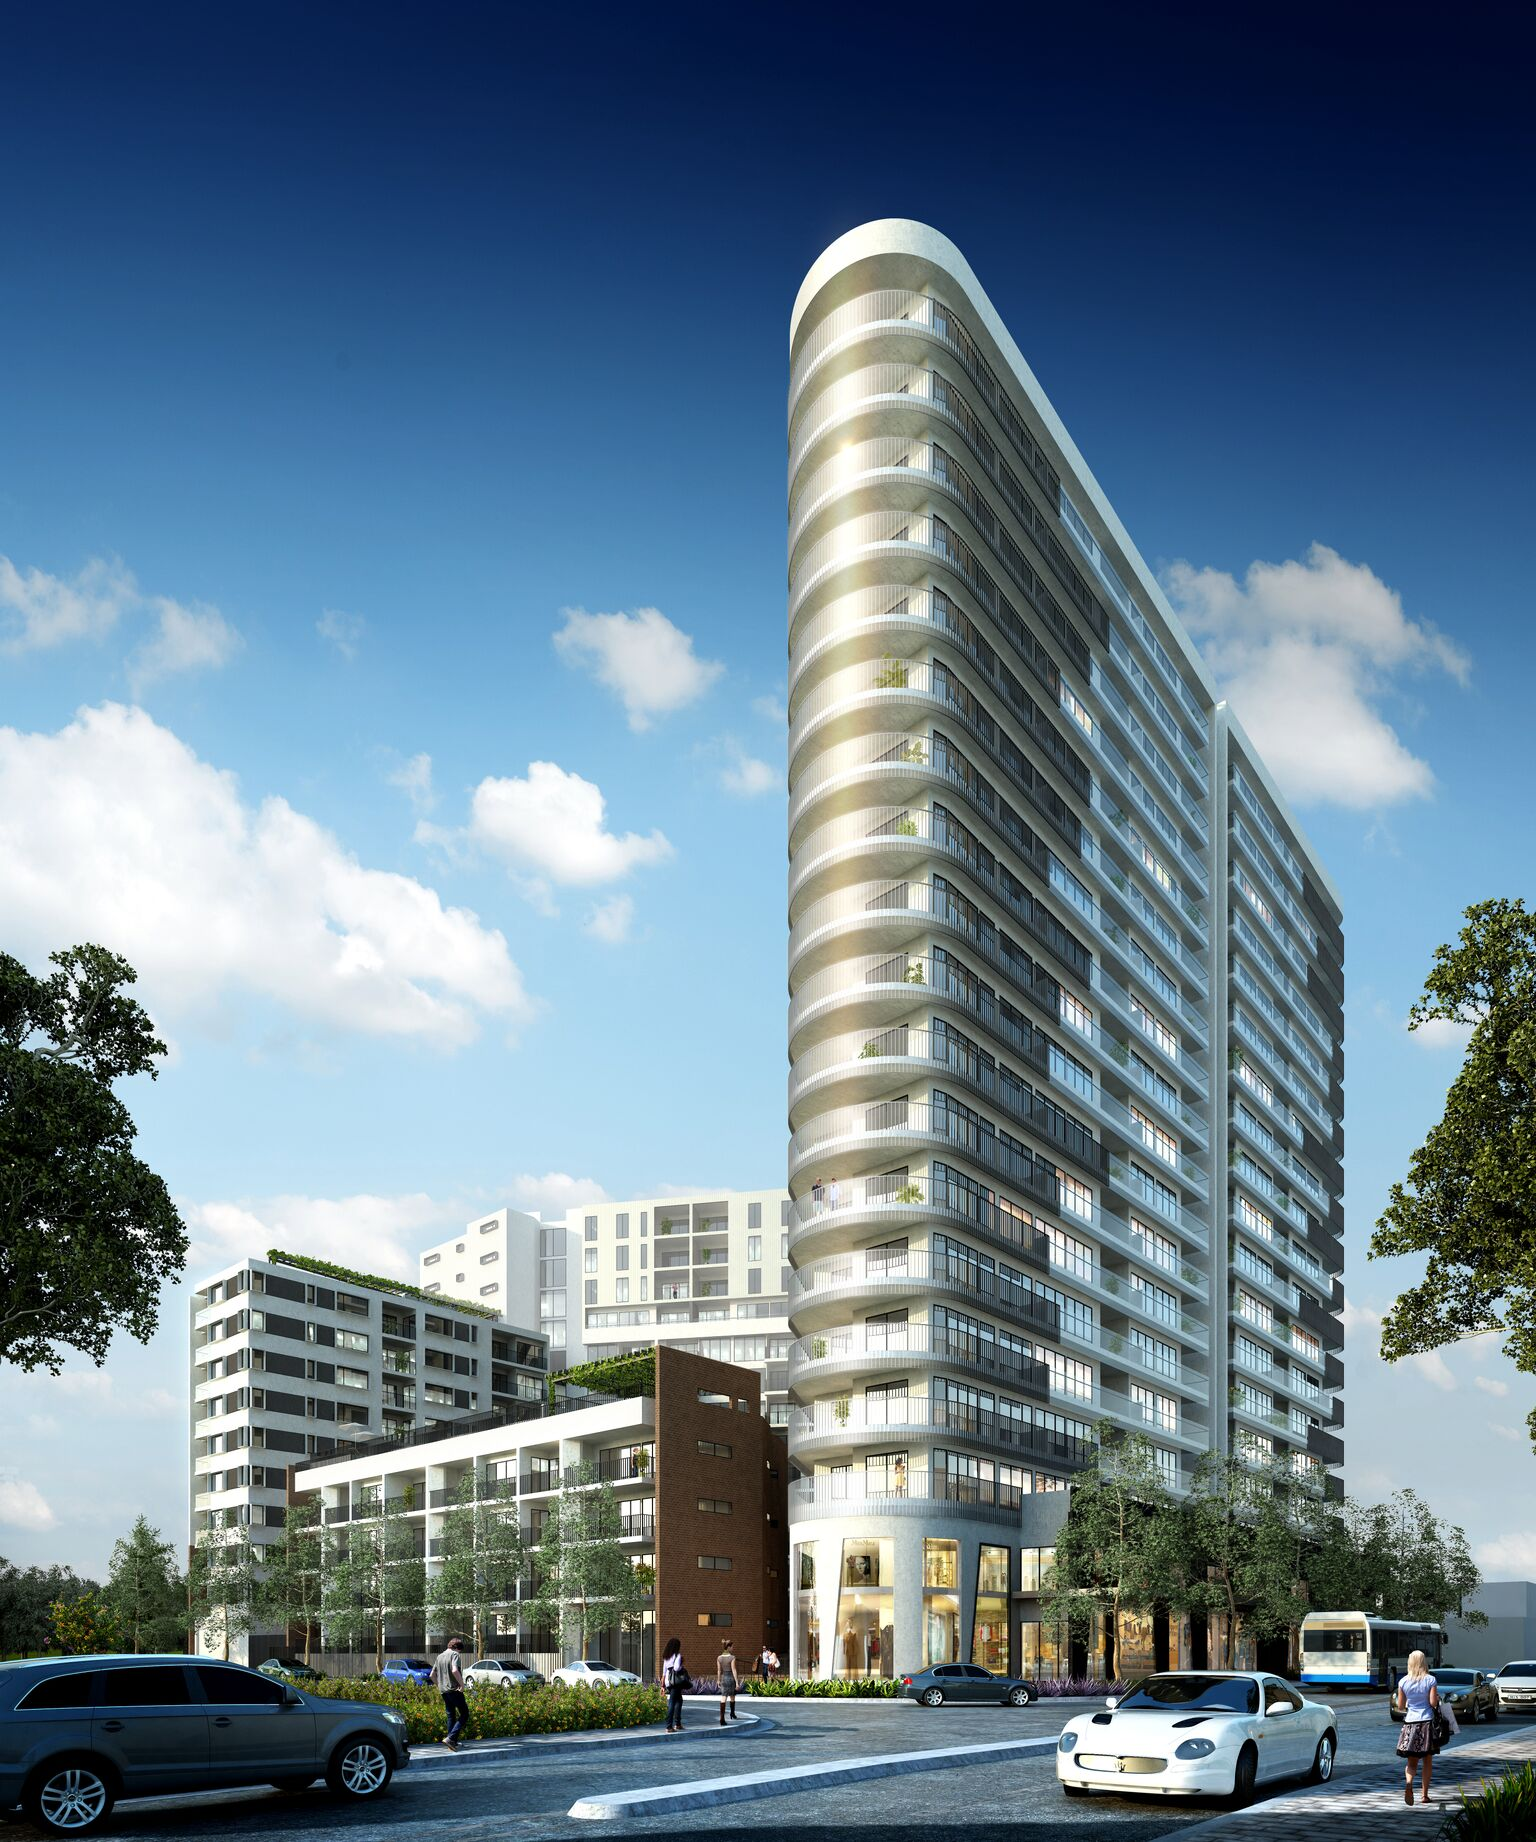 The highest building for the site will rise 20-storeys.